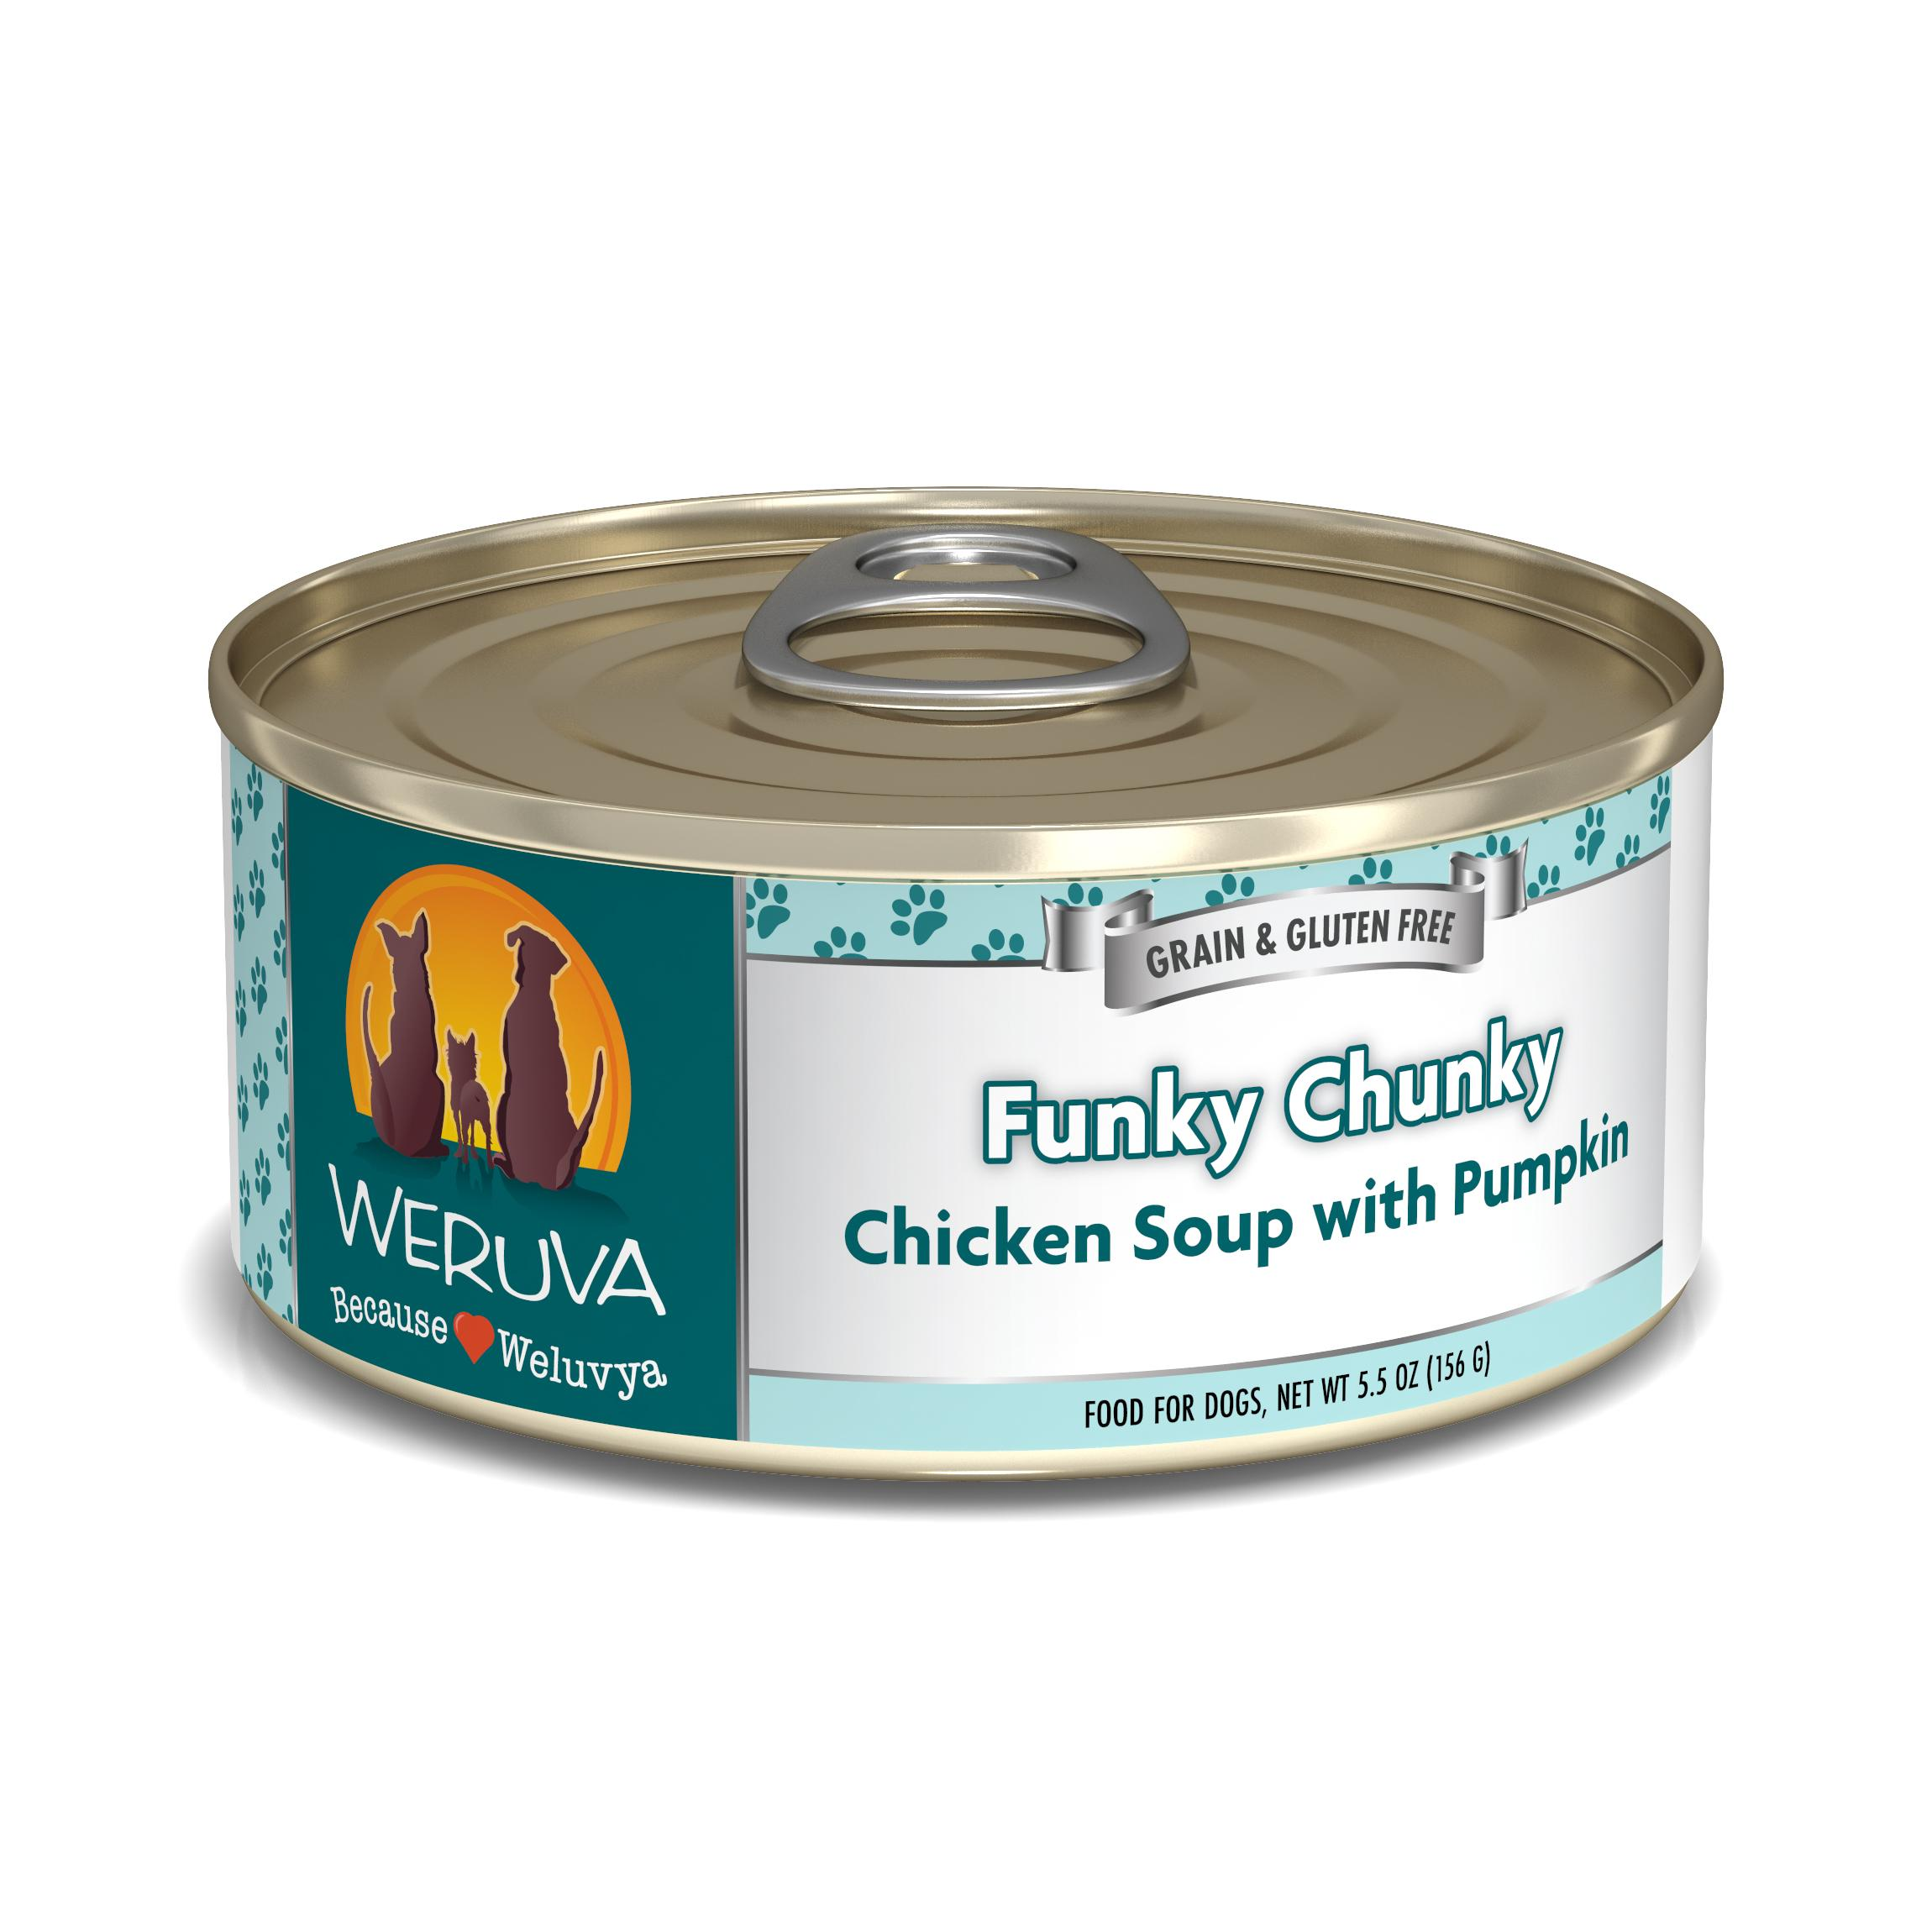 Weruva Dog Classic Funky Chunky Chicken Soup with Pumpkin Grain-Free Wet Dog Food Image